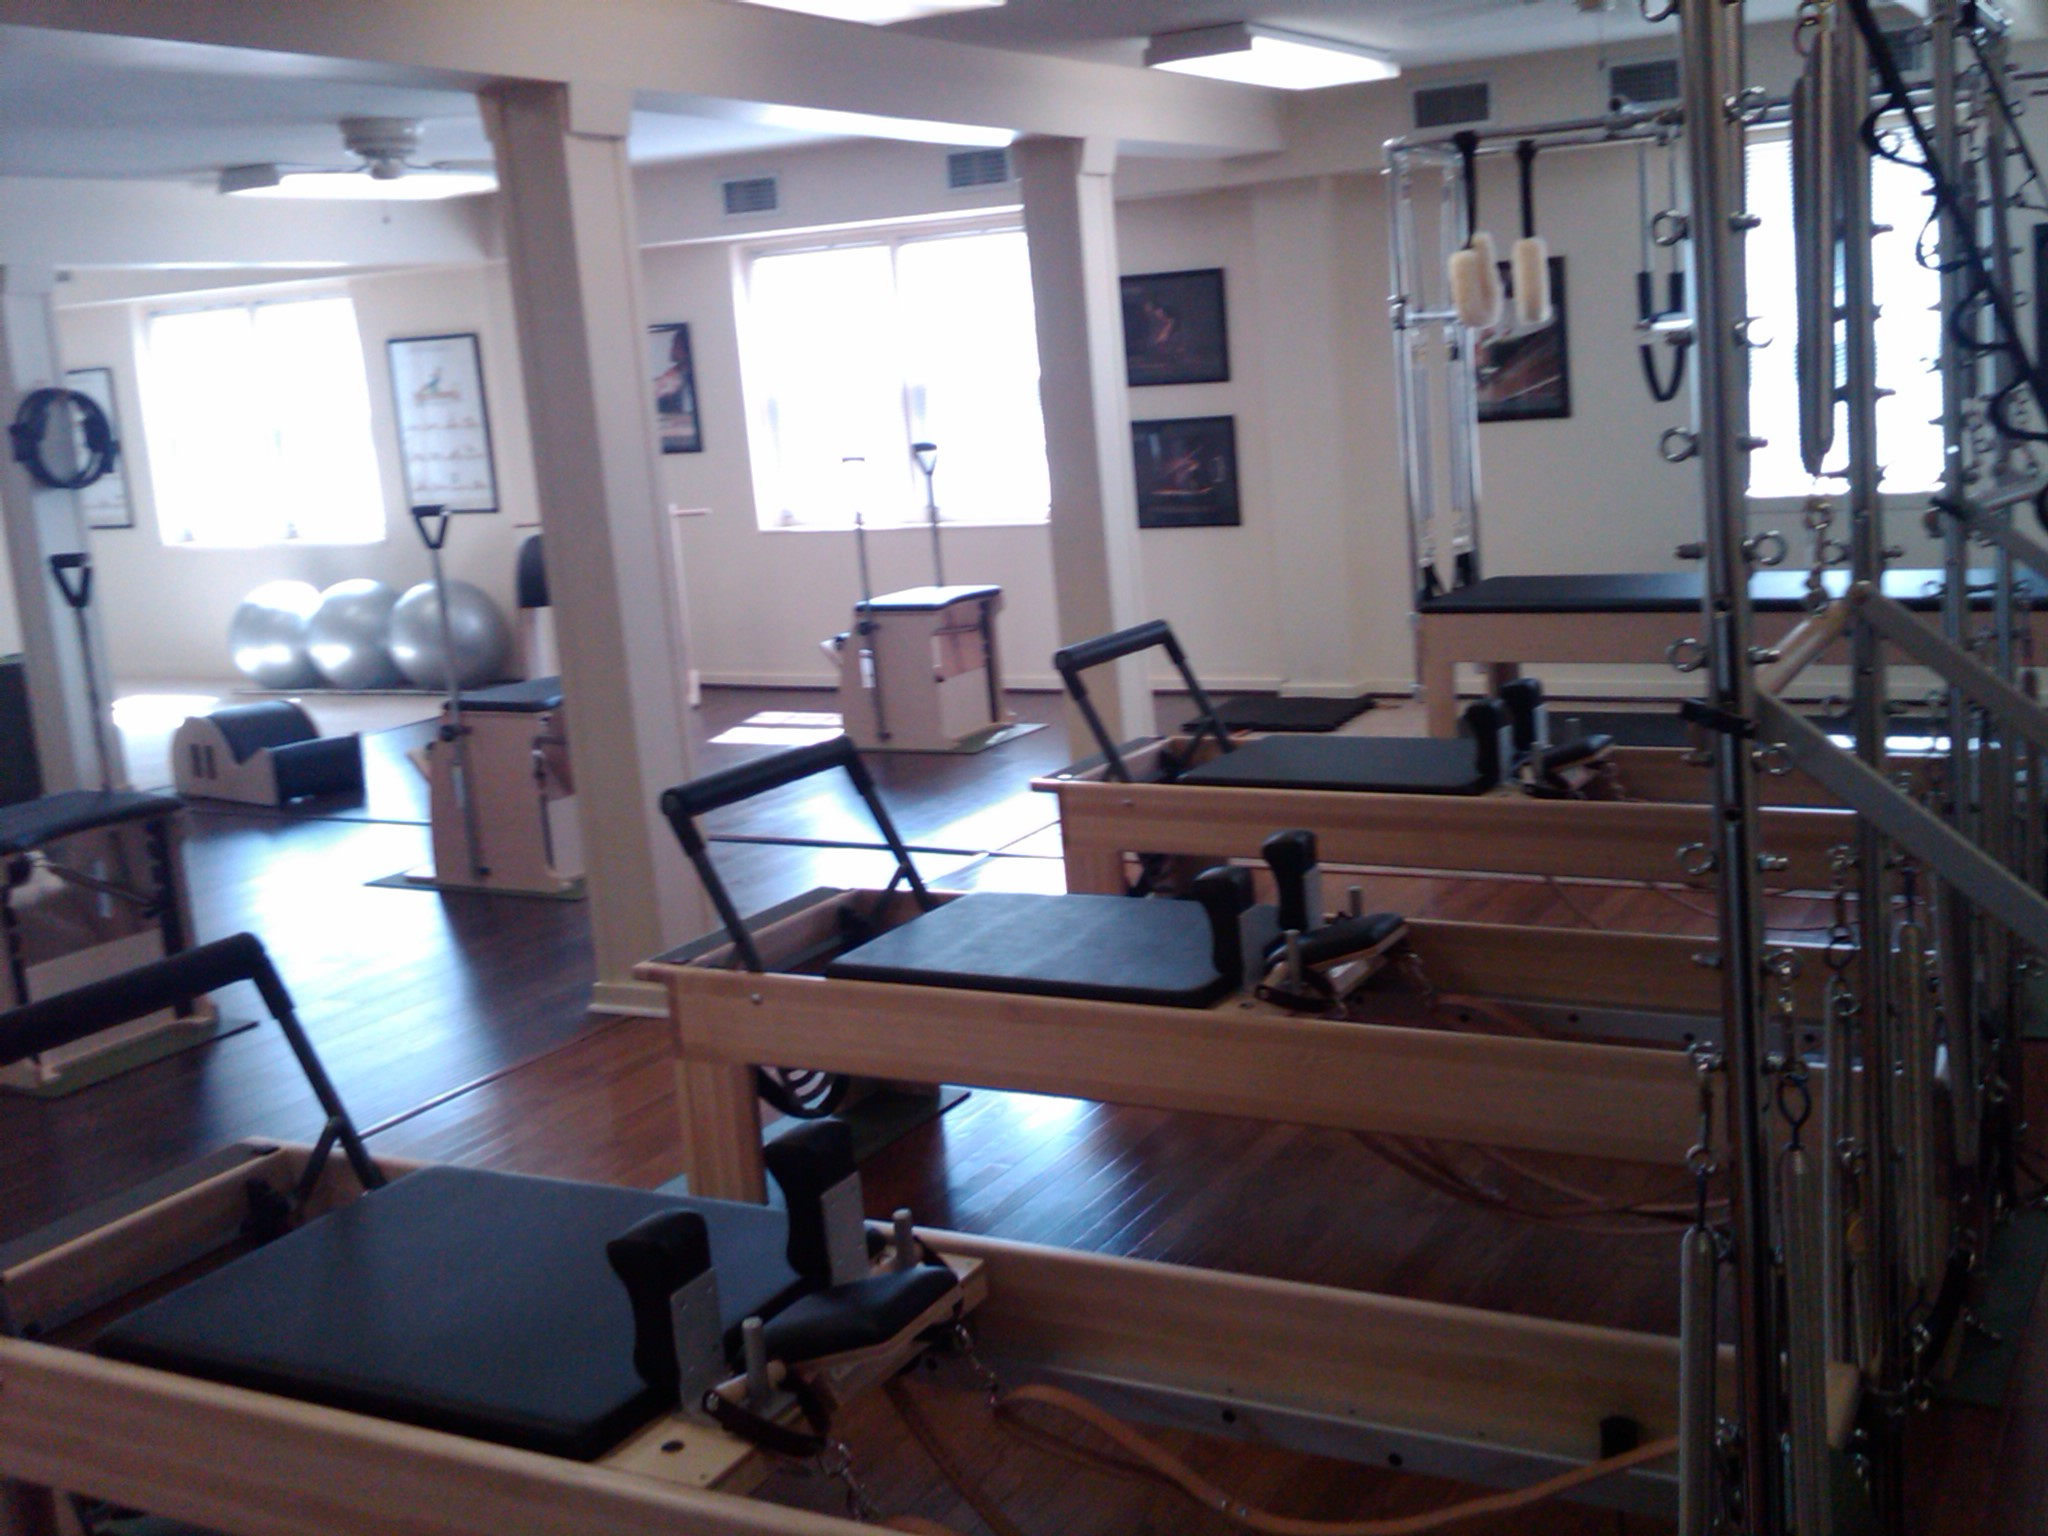 Greensboro Pilates Studio Equipment